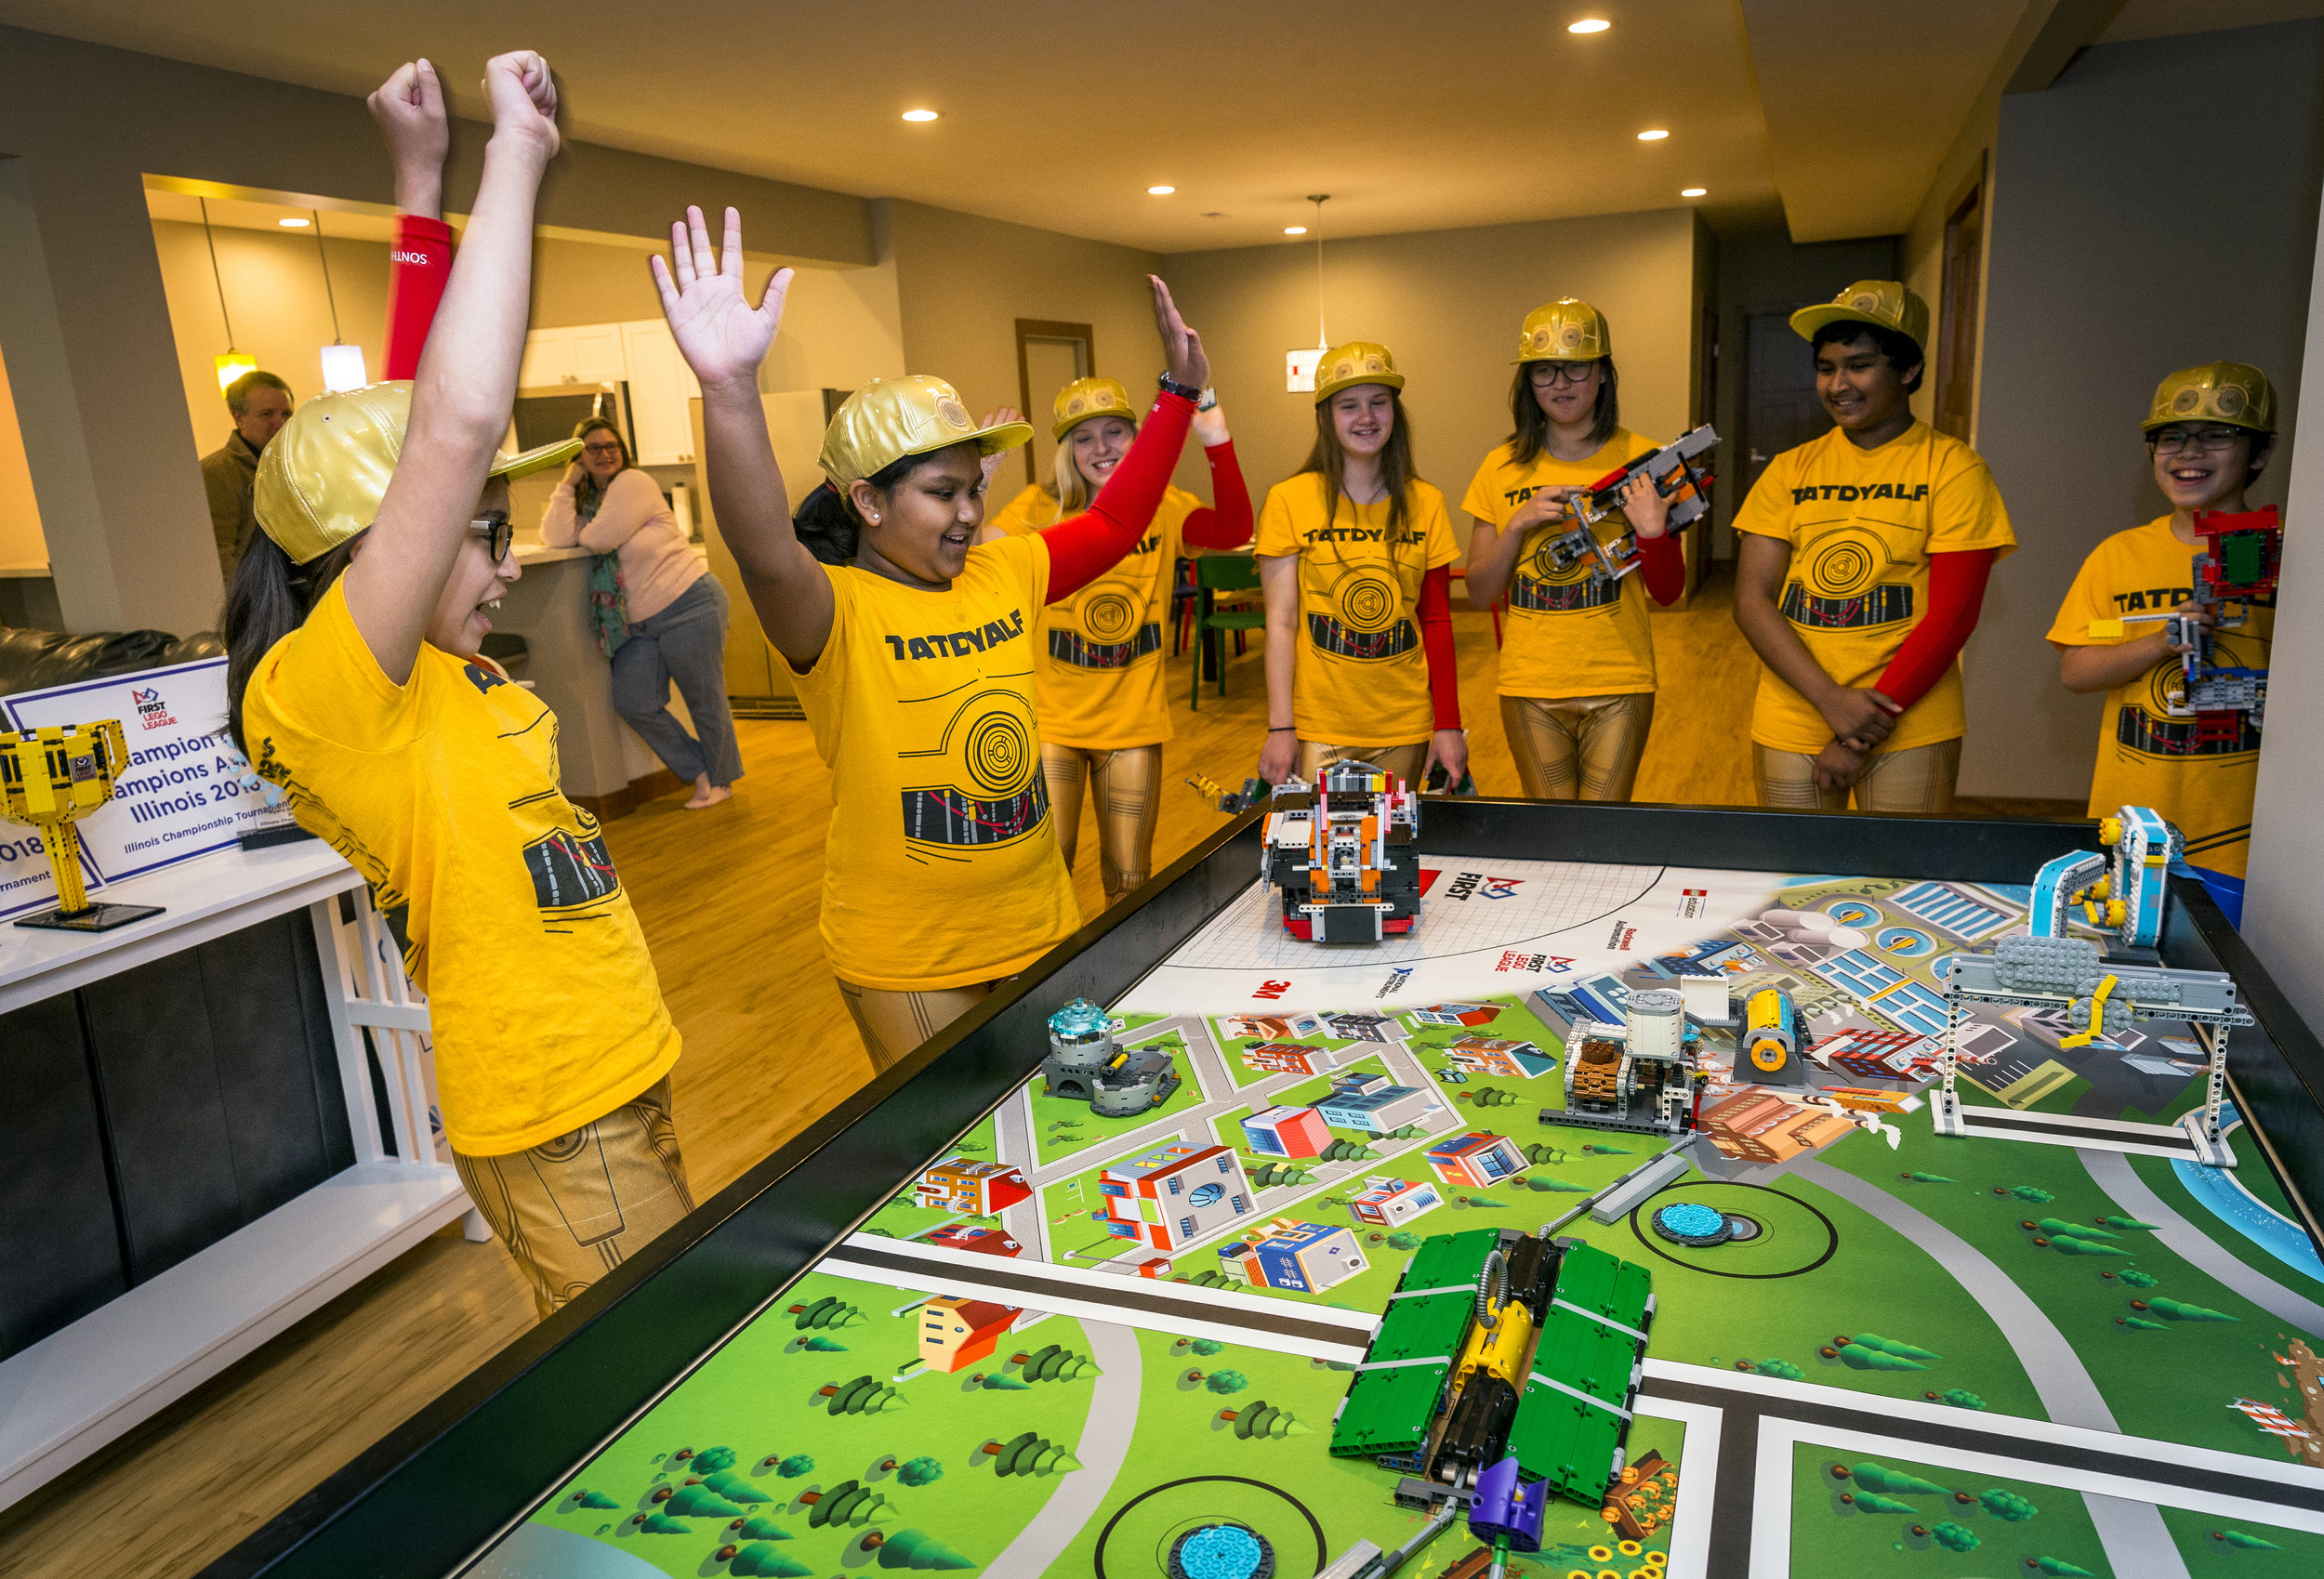 "Isha Ramkumar, 10, left, celebrates with her teammates on the These Are The Droids You Are Looking For (TATDYALF) team as their autonomous robot named ""Bellatrix"" performs a successful mission on a FIRST LEGO League Robotics Competition board in the basement of team member Macy Sumner's home, Friday, April 13, 2018, in Springfield, Ill. These Are The Droids You Are Looking For (TATDYALF) is a team of students from Iles Elementary, Iles Middle School, and Franklin Middle School in Springfield, and Williamsville Junior High School that will compete against more than 100 champion teams from around the world at the FIRST LEGO League World Festival in Detroit, Michigan from April 25–28. [Justin L. Fowler/The State Journal-Register]"